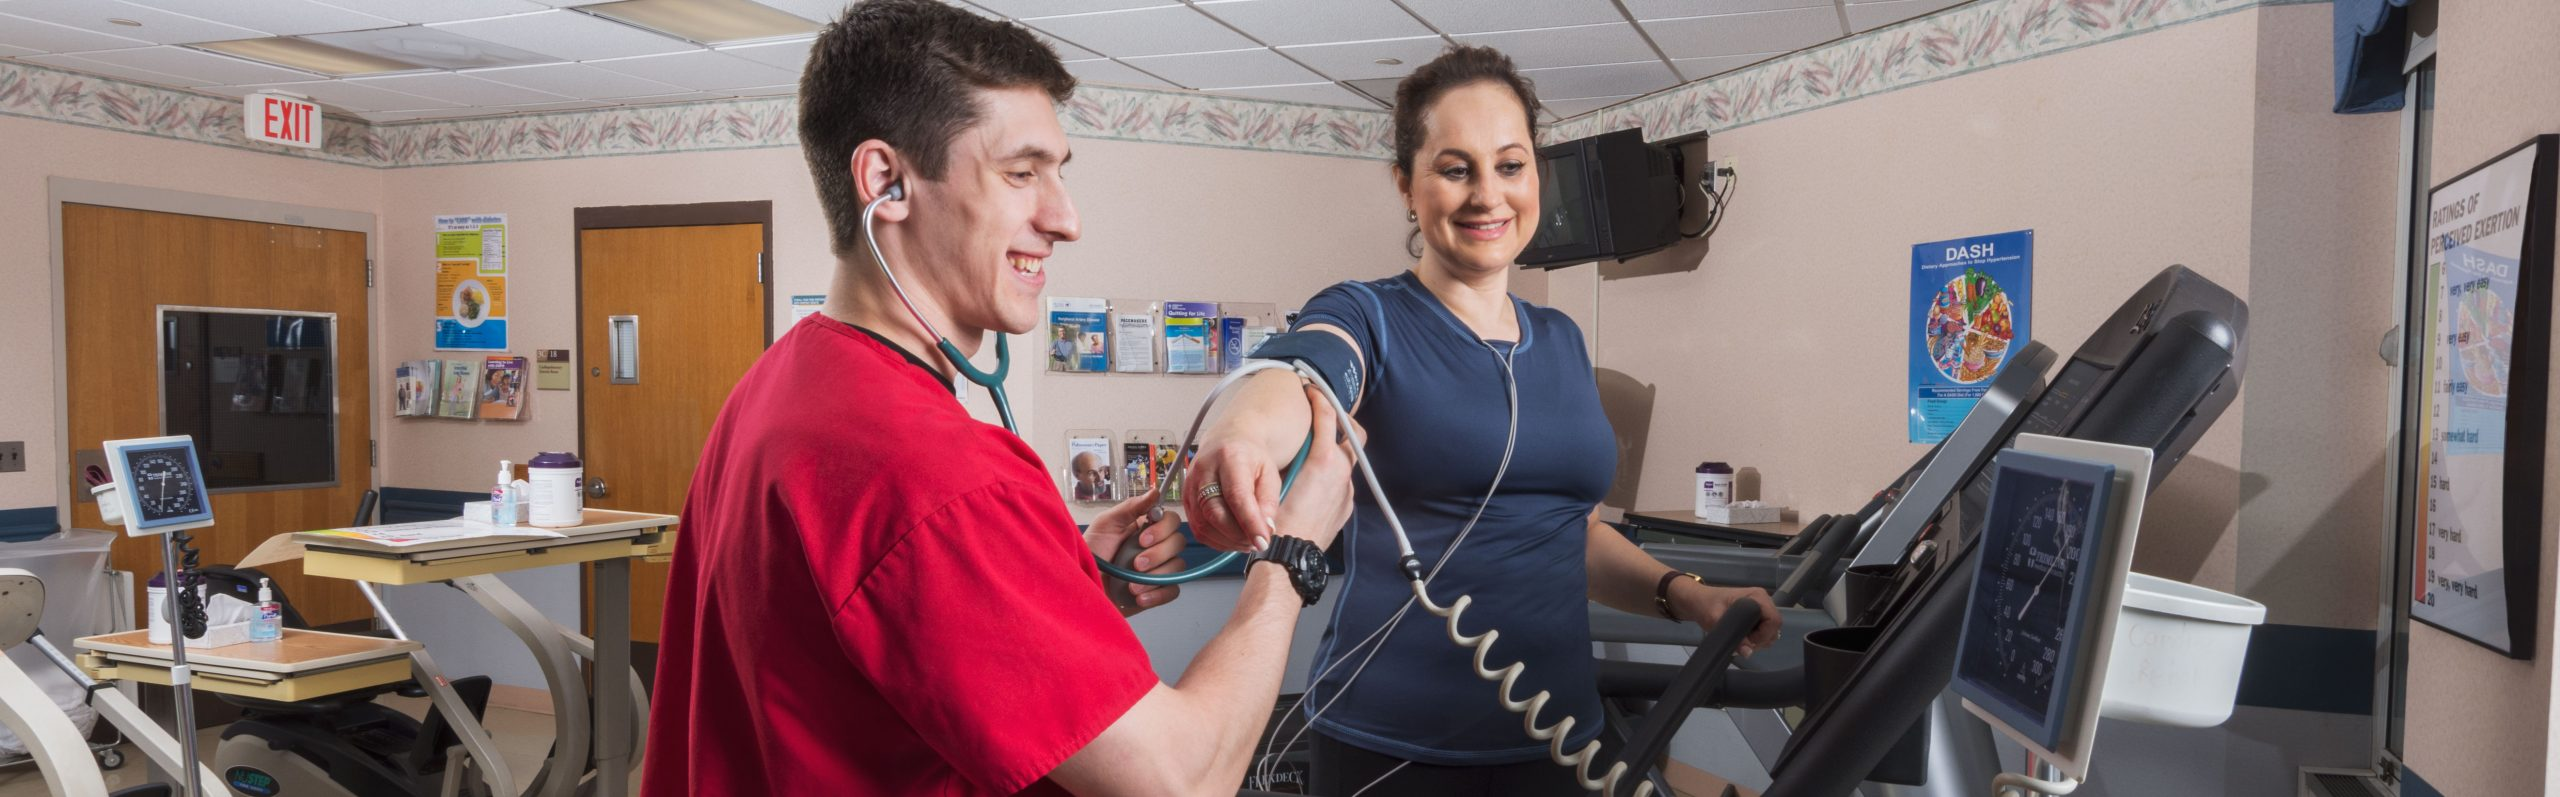 Exercise-physiologist-checking-blood-pressure